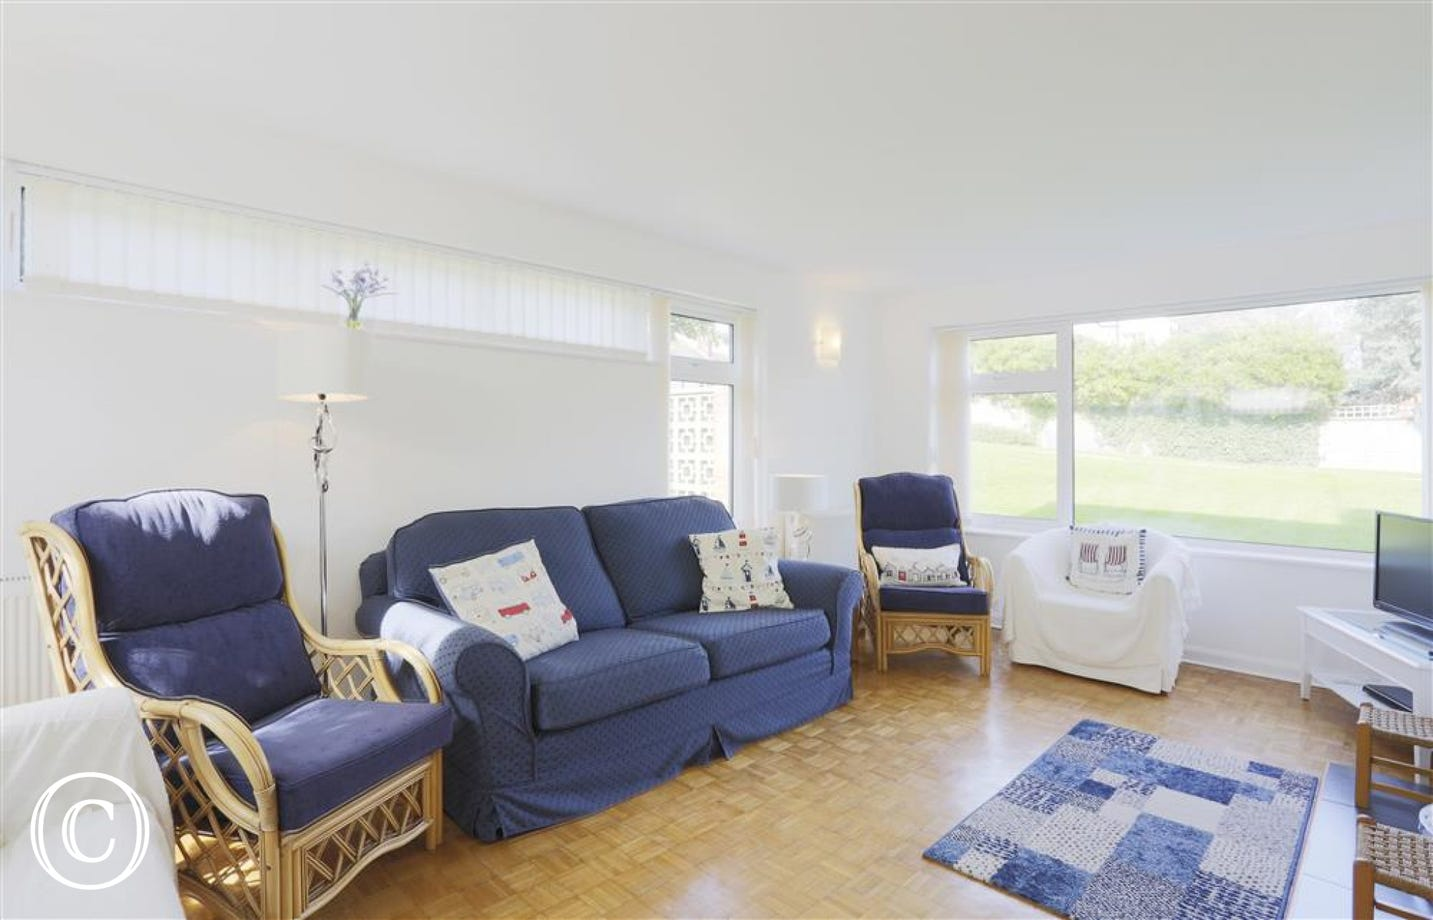 This sitting room with seaside blue finishing touches and soft furnishings makes for an ideal place to gather for a spot of television.